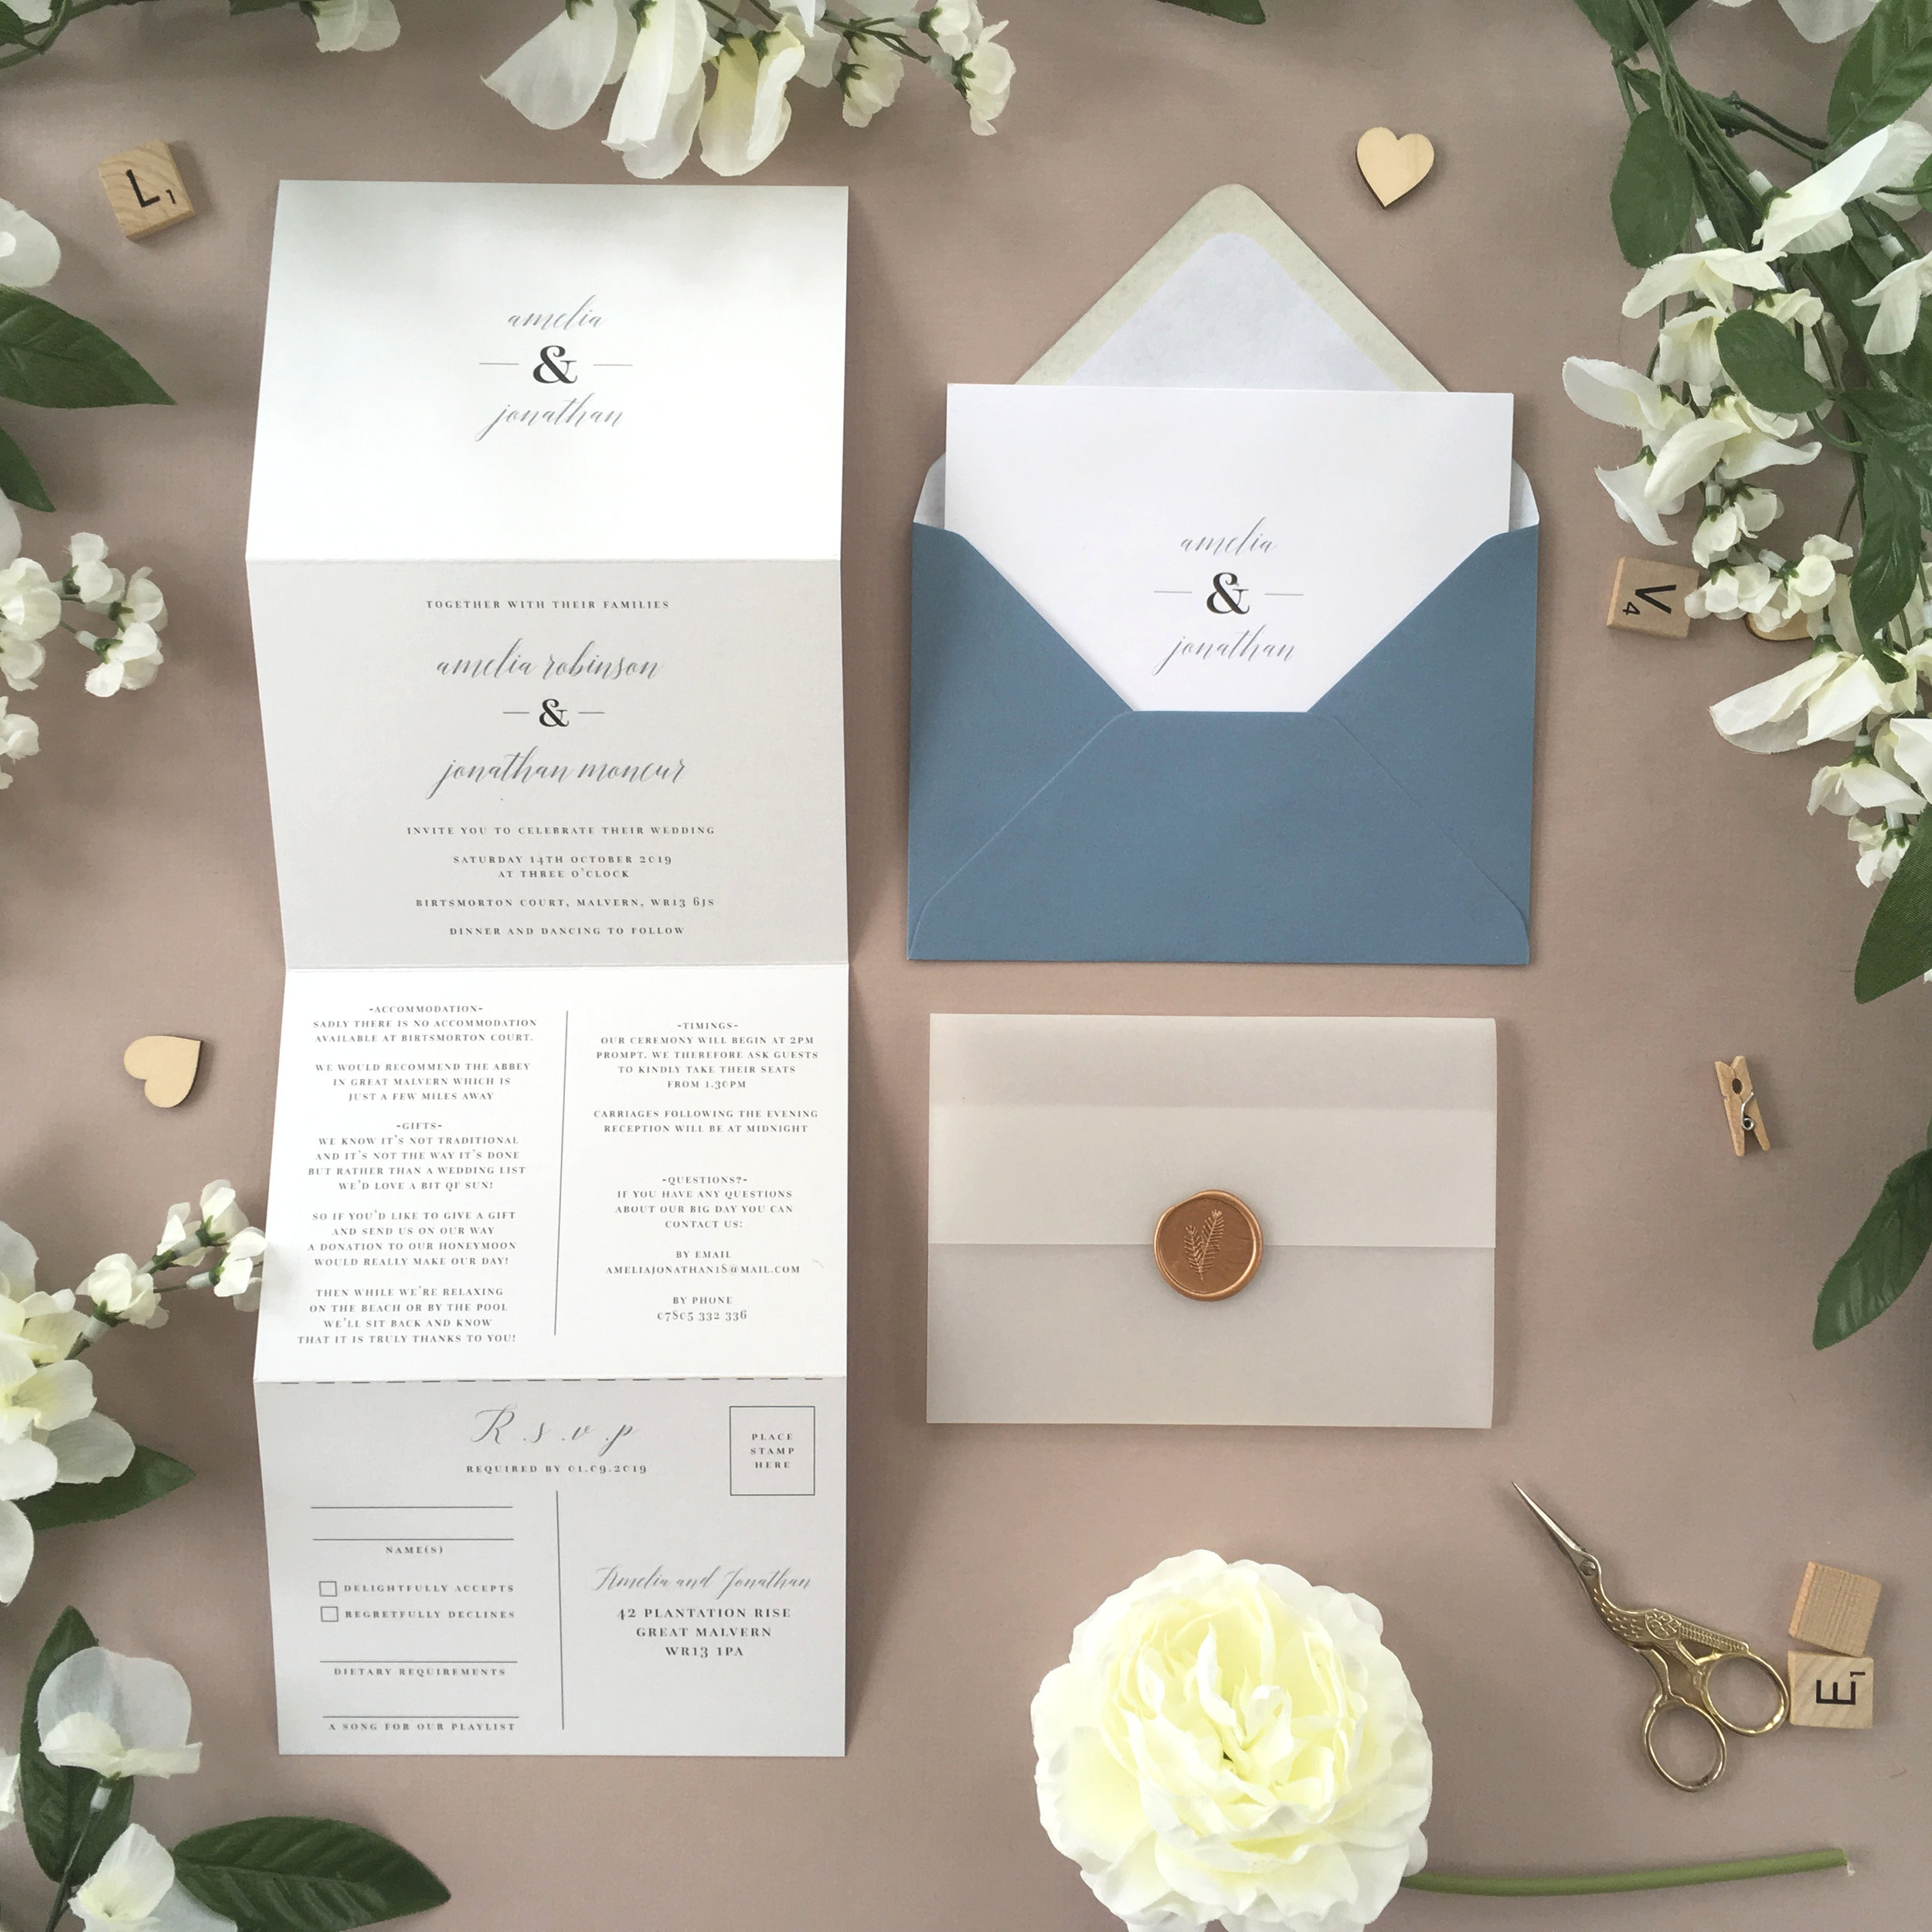 Westminster - Classically-styled and shown pictured in a muted blue colour scheme, this elegant concertina invitation comes from our Westminster collection.Our concertina invitations are a great all-in-one solution, with a detachable RSVP at the bottom of the invitation - all guests need to do is fill in their details, put a stamp in the corner and post!Concertina invitations can be provided on an as-is basis, or can be provided bound with a vellum jacket and timeless wax seal, or tied with ribbon or twine for a lovely hand-finished approach.- Concertina Invitation - from £1.95- Ribbon or Twine - £0.40- Vellum Jacket - £0.40- Wax Seal - £0.85 (Custom engraving also available)White envelope provided as standard with coloured upgrade available.